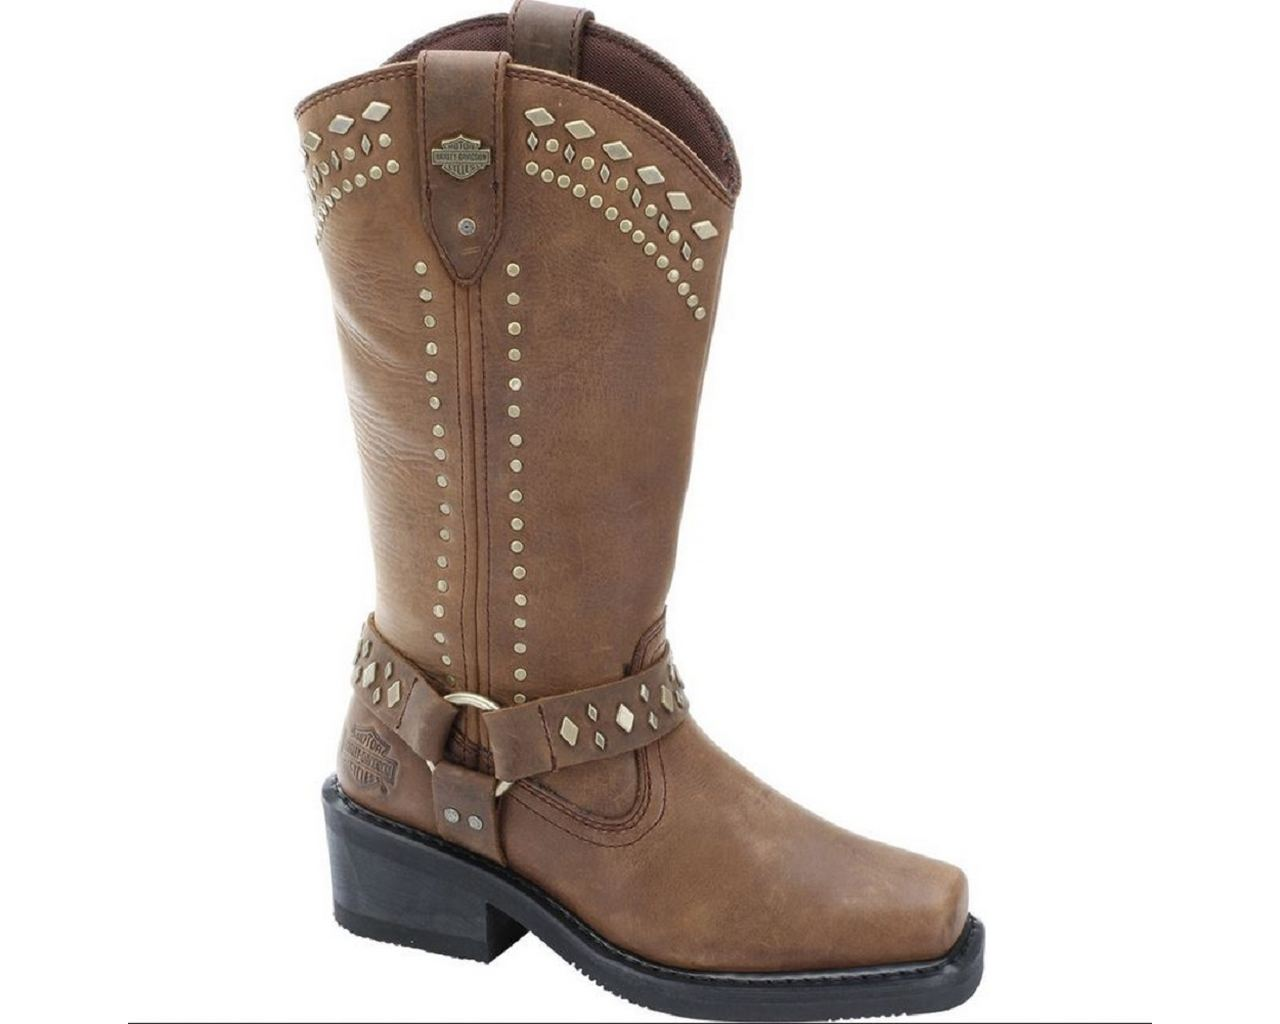 Elegant Harley Davidson Ladies DARICE Brown Leather Boot Slip On Biker Boots